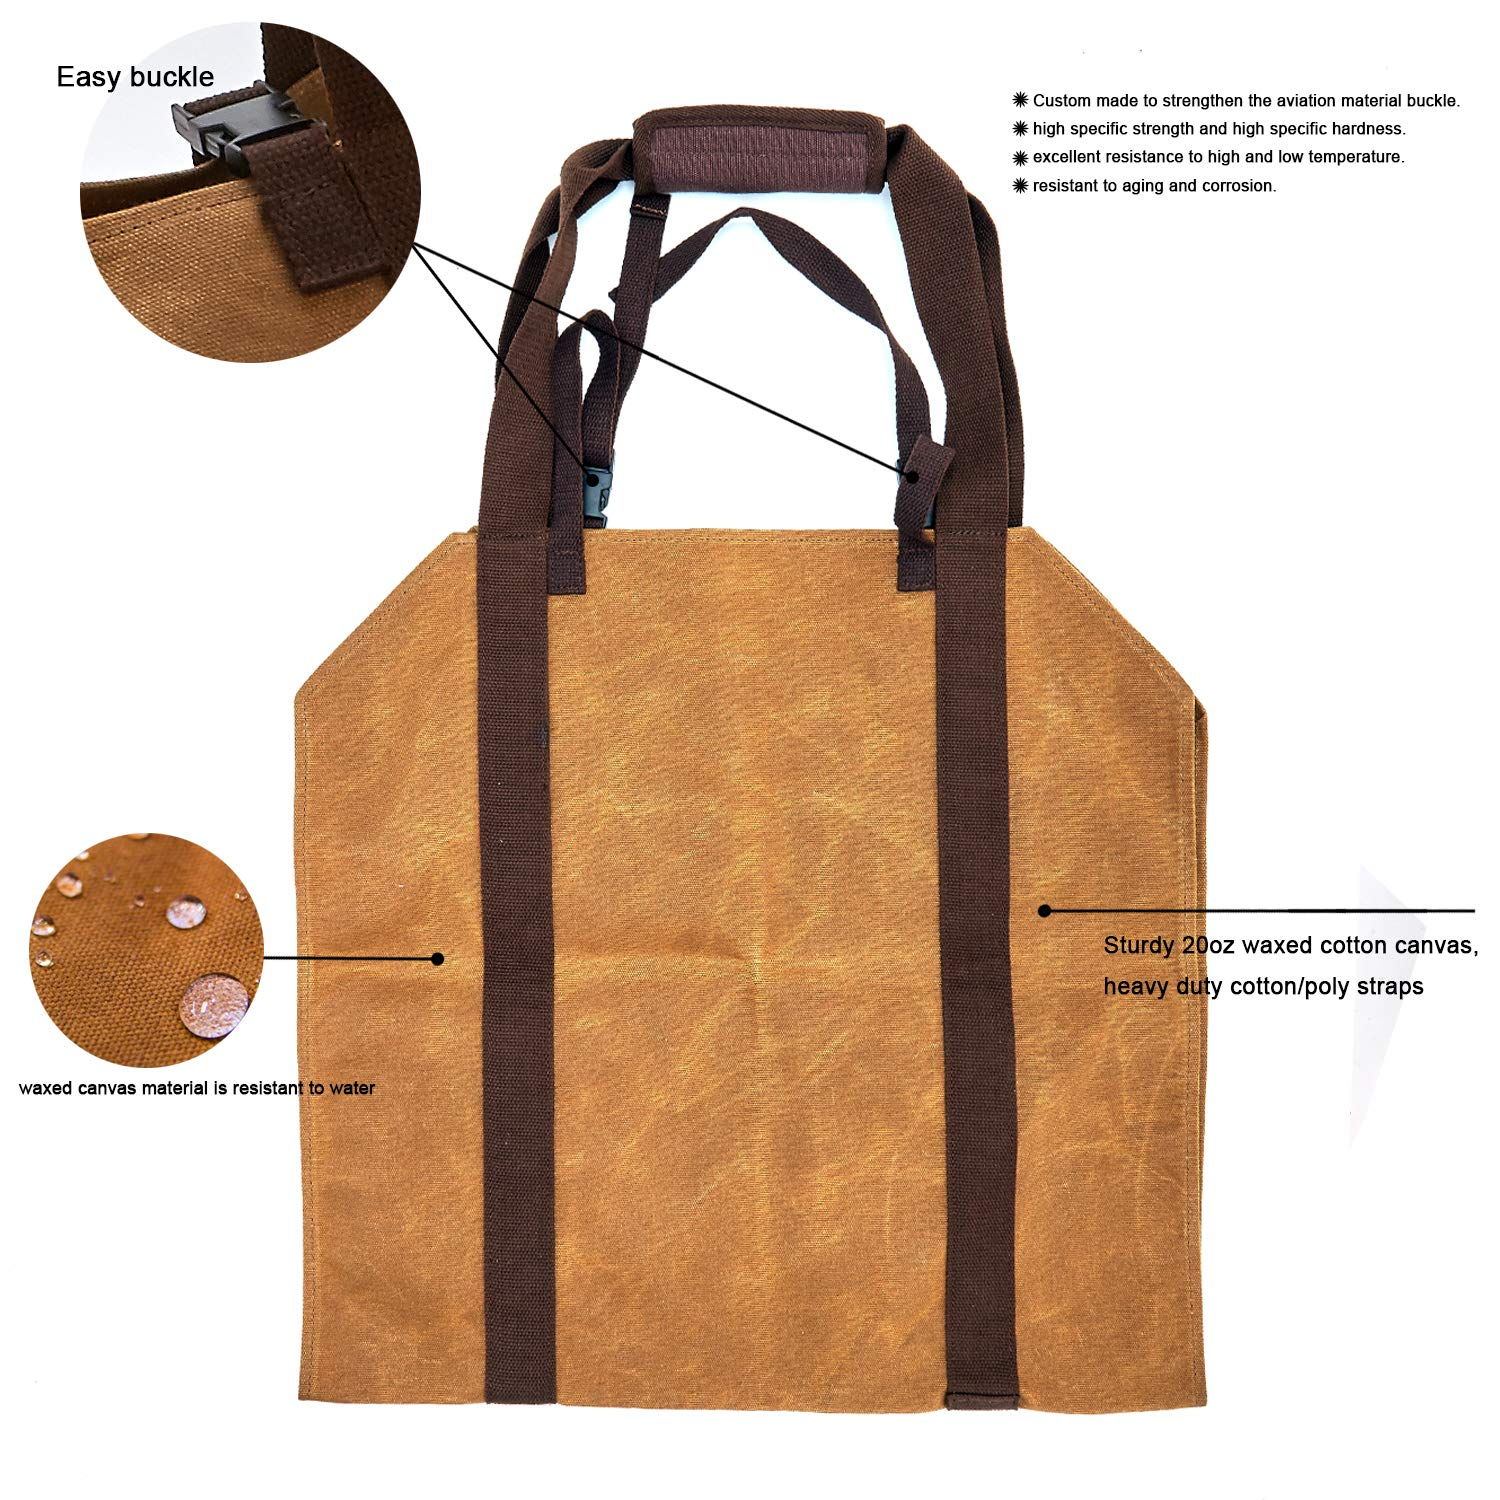 Sturdy Firewood Log Carrier Fire Wood Tote Waxed Canvas Carrying Bag Holder